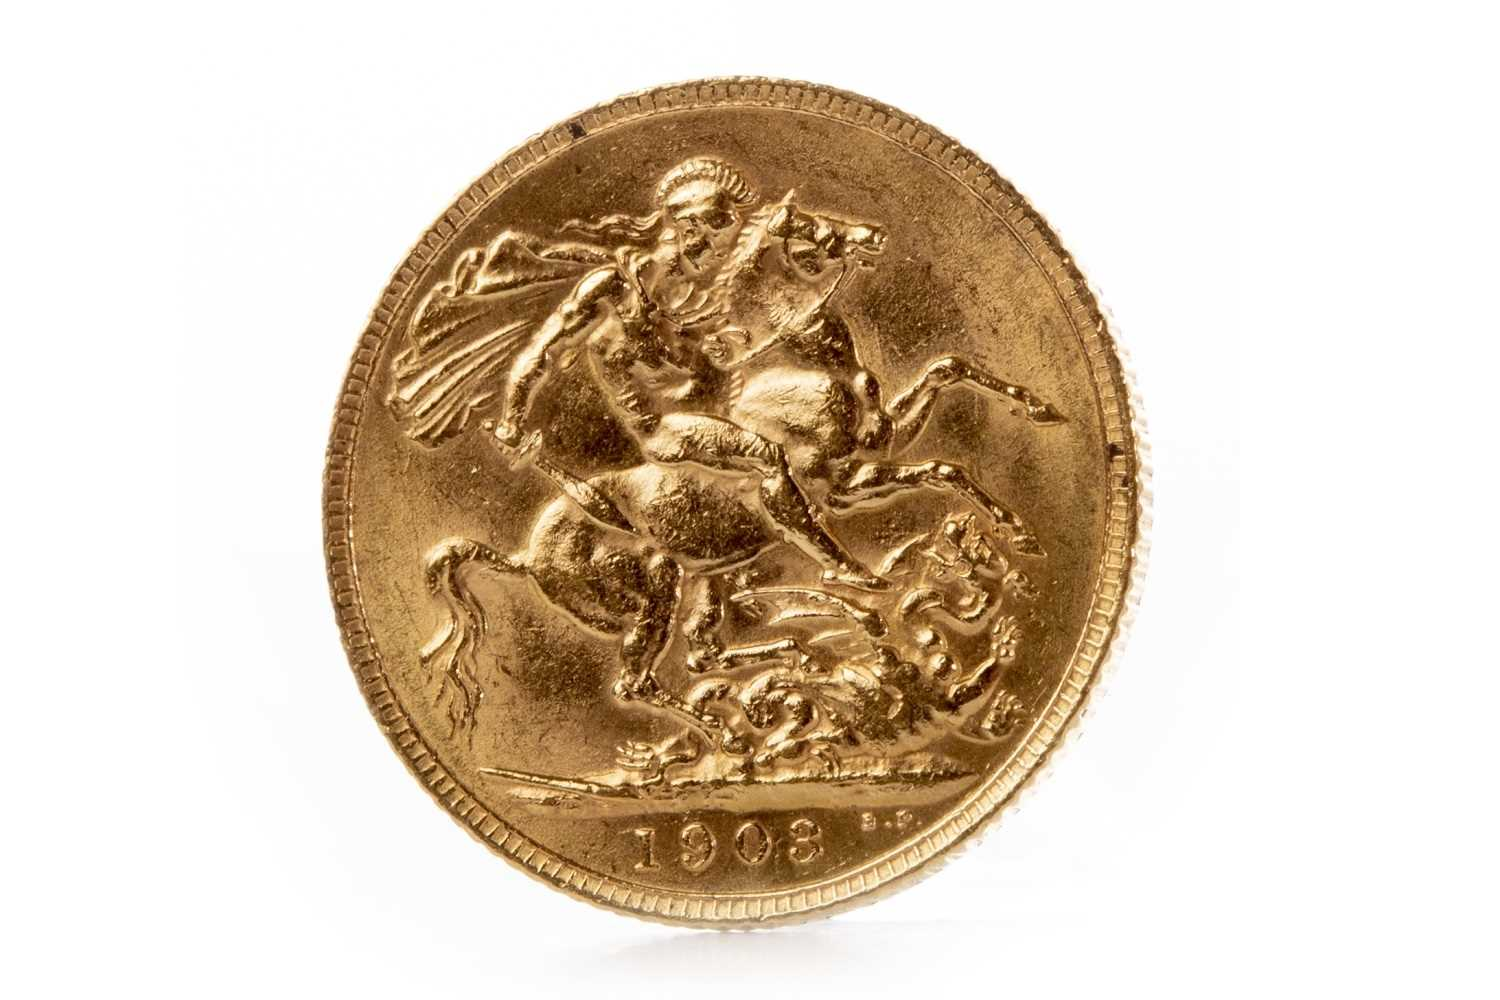 Lot 542-A GOLD SOVEREIGN, 1903